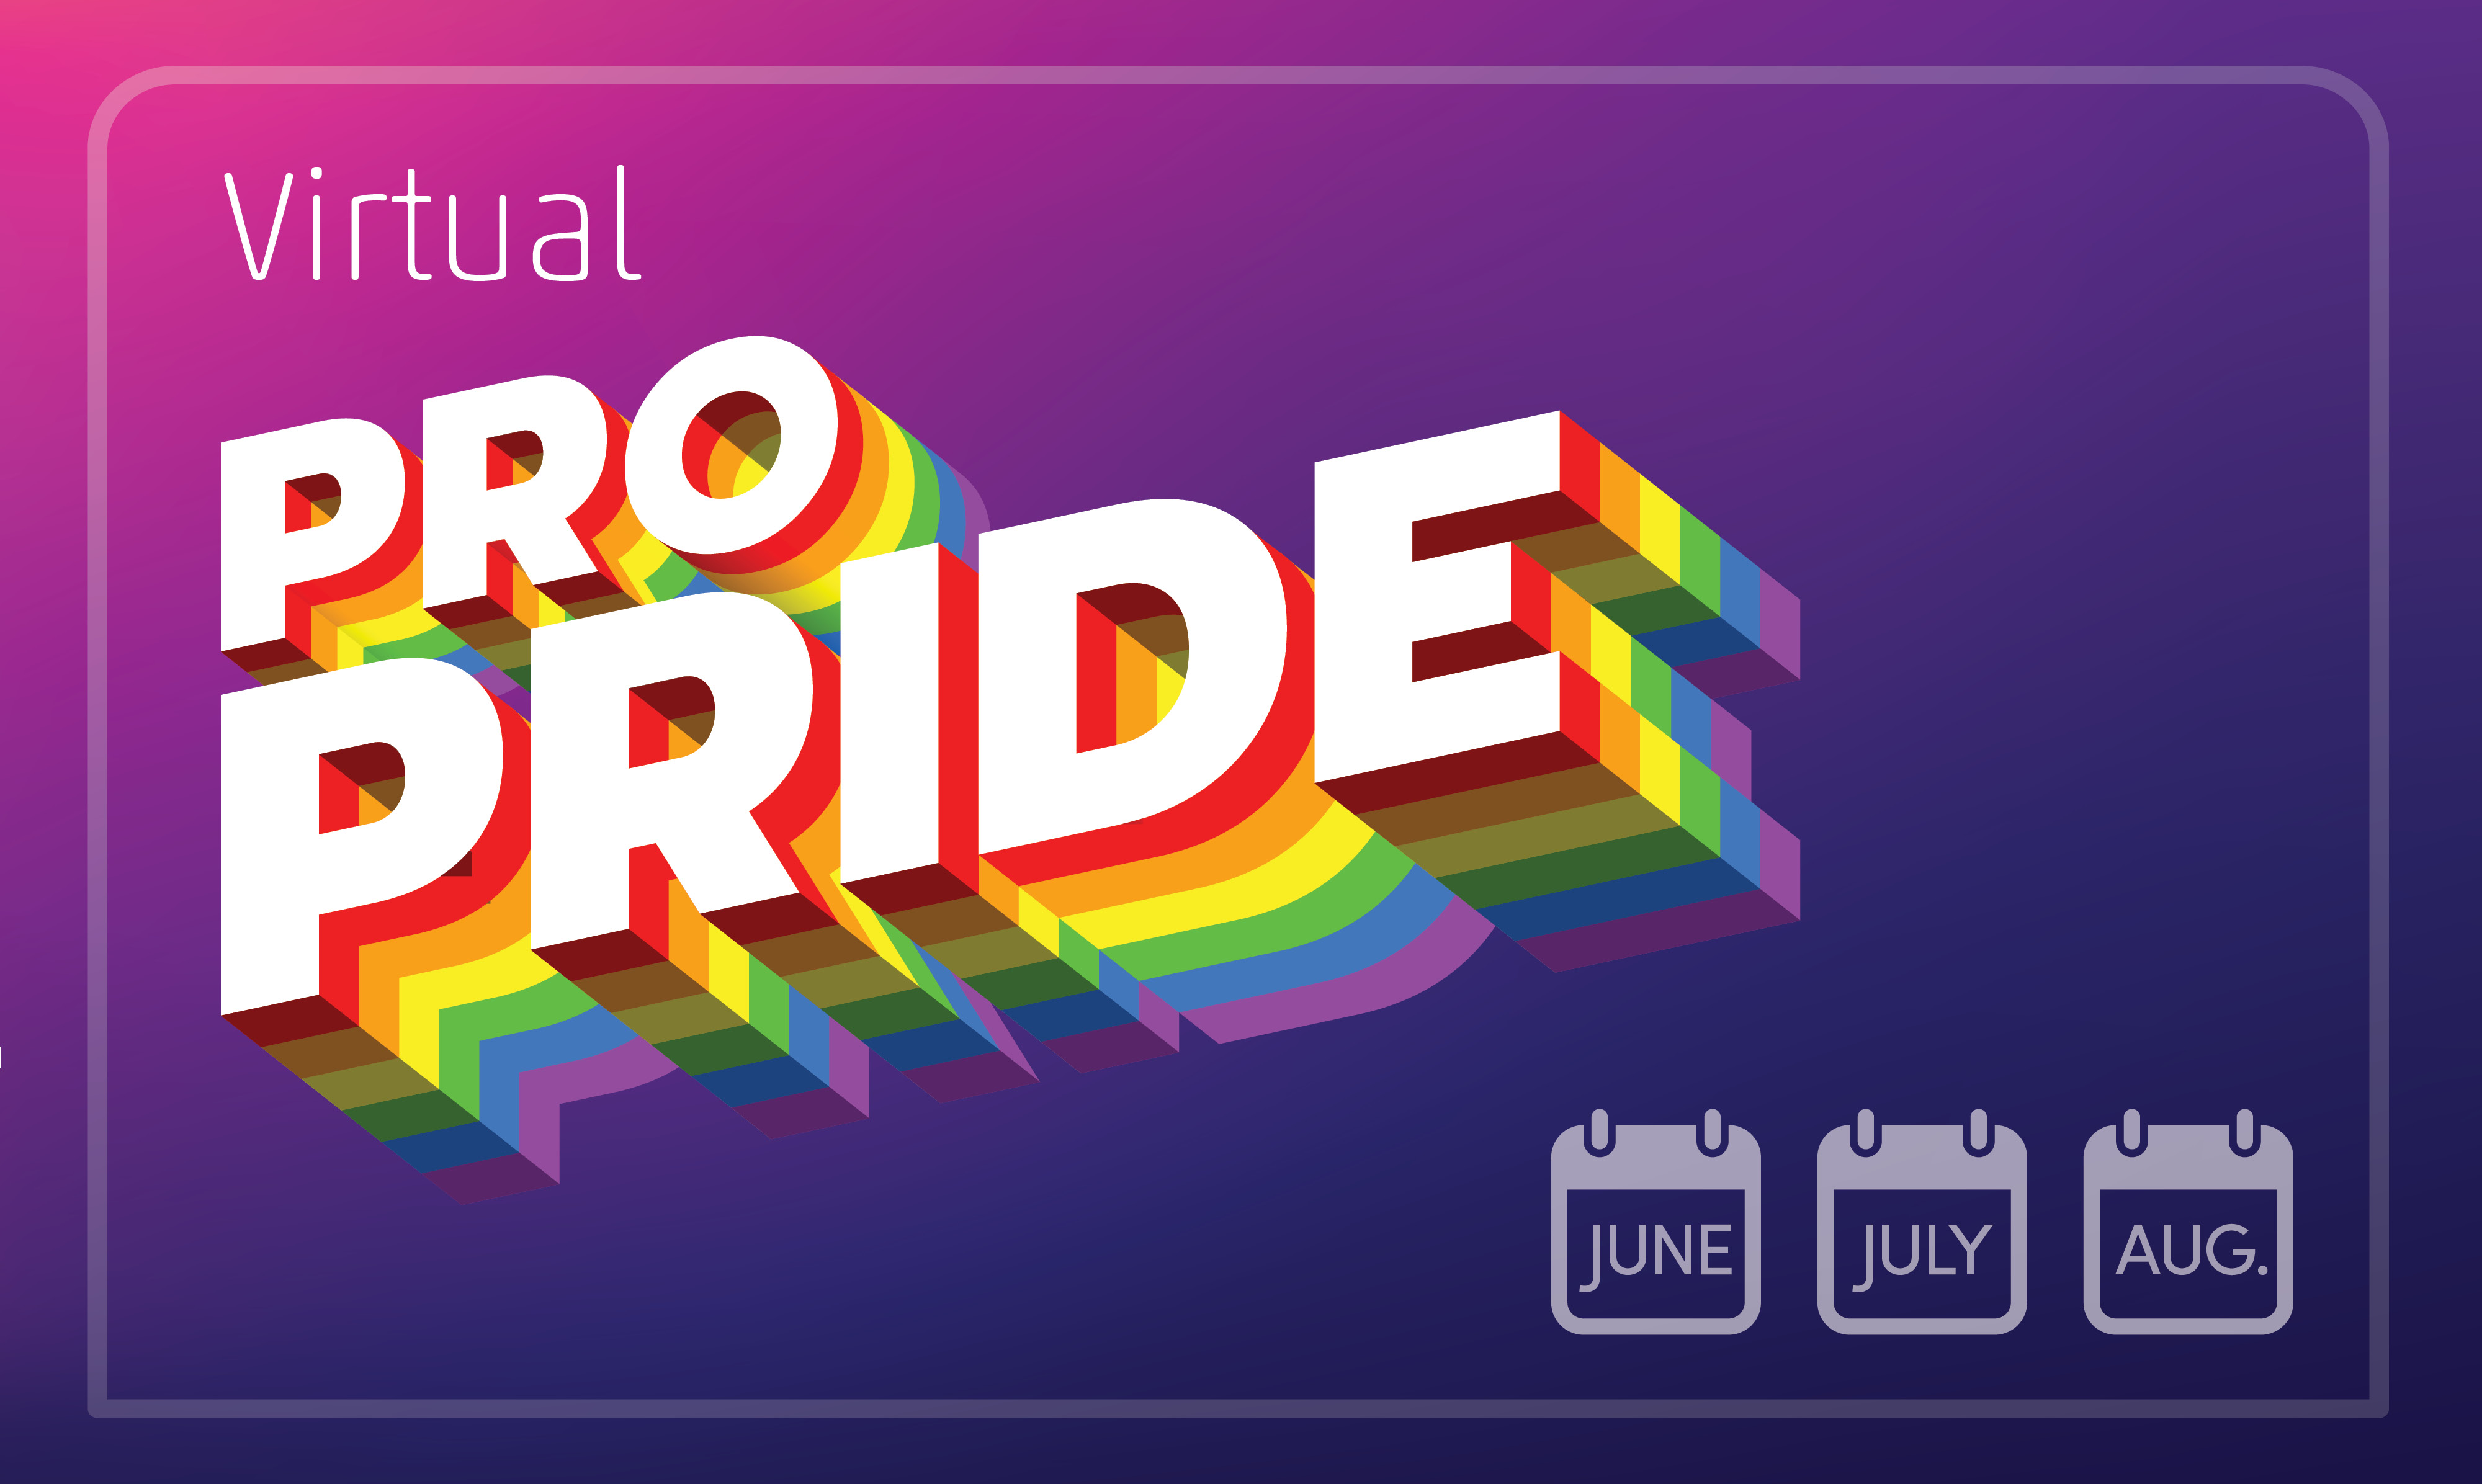 Virtual ProPride logo with icons related to June, July and August